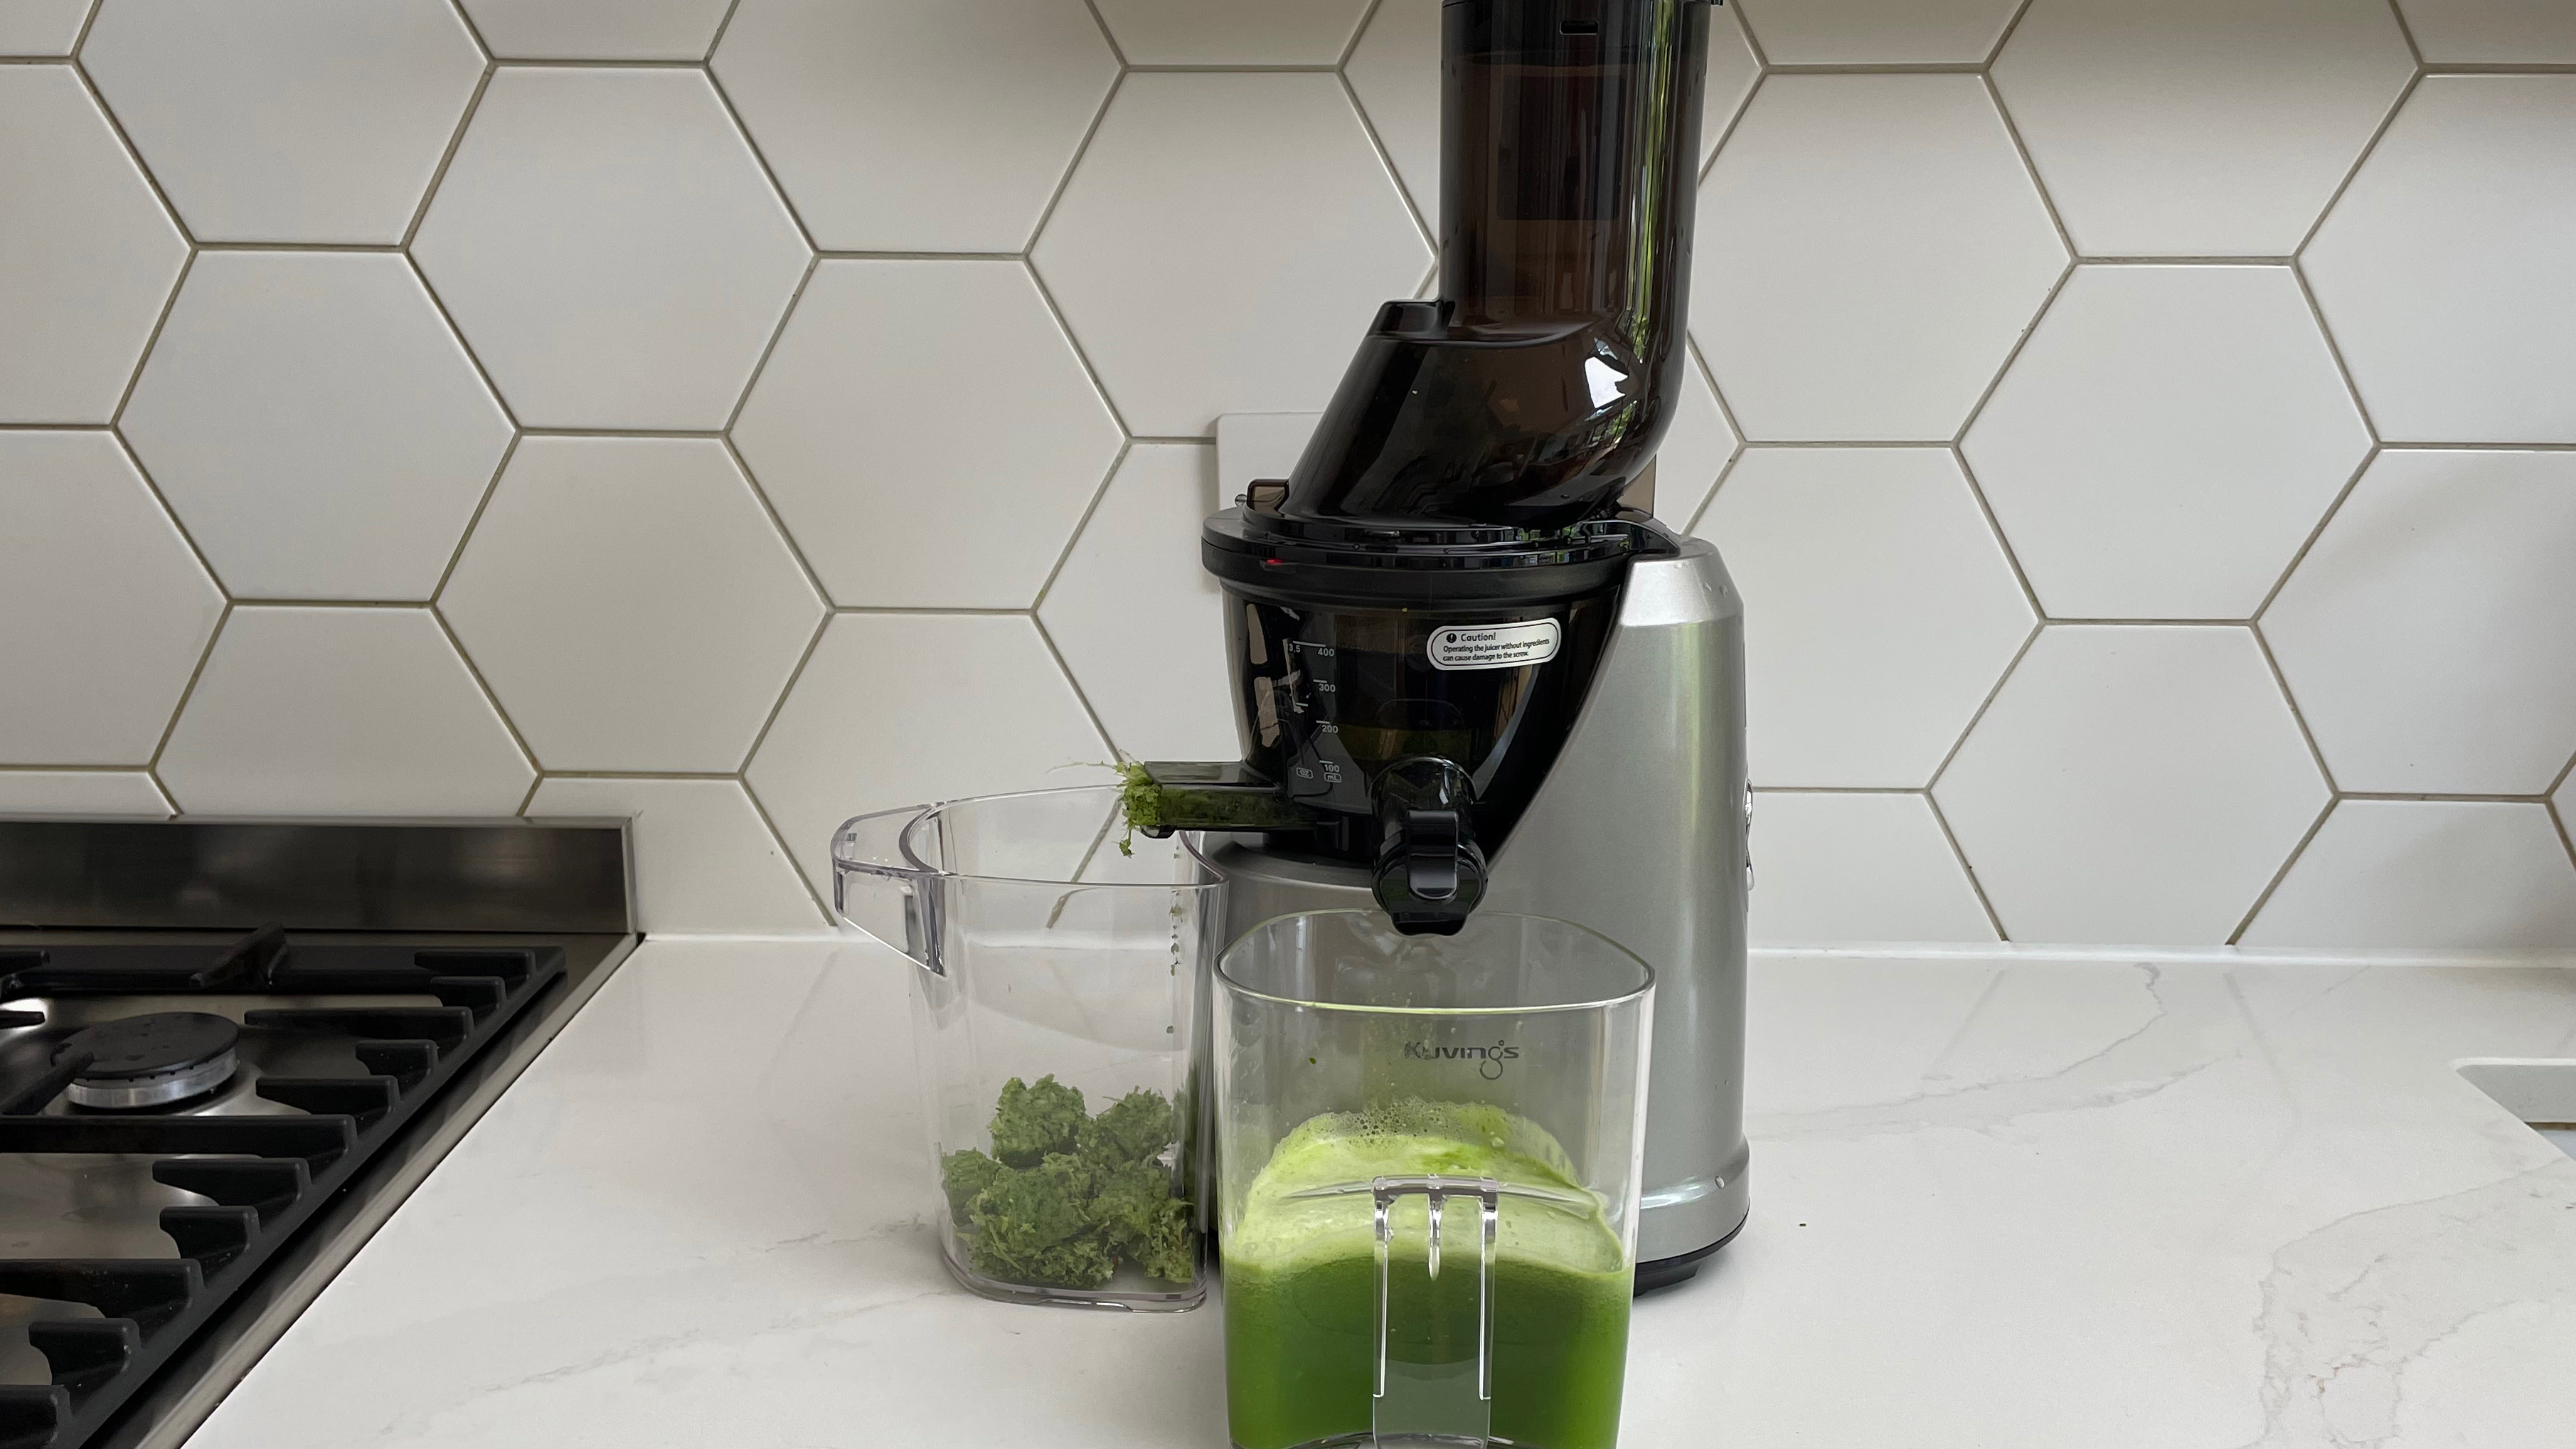 Kuvings B1700 being used to make green juice